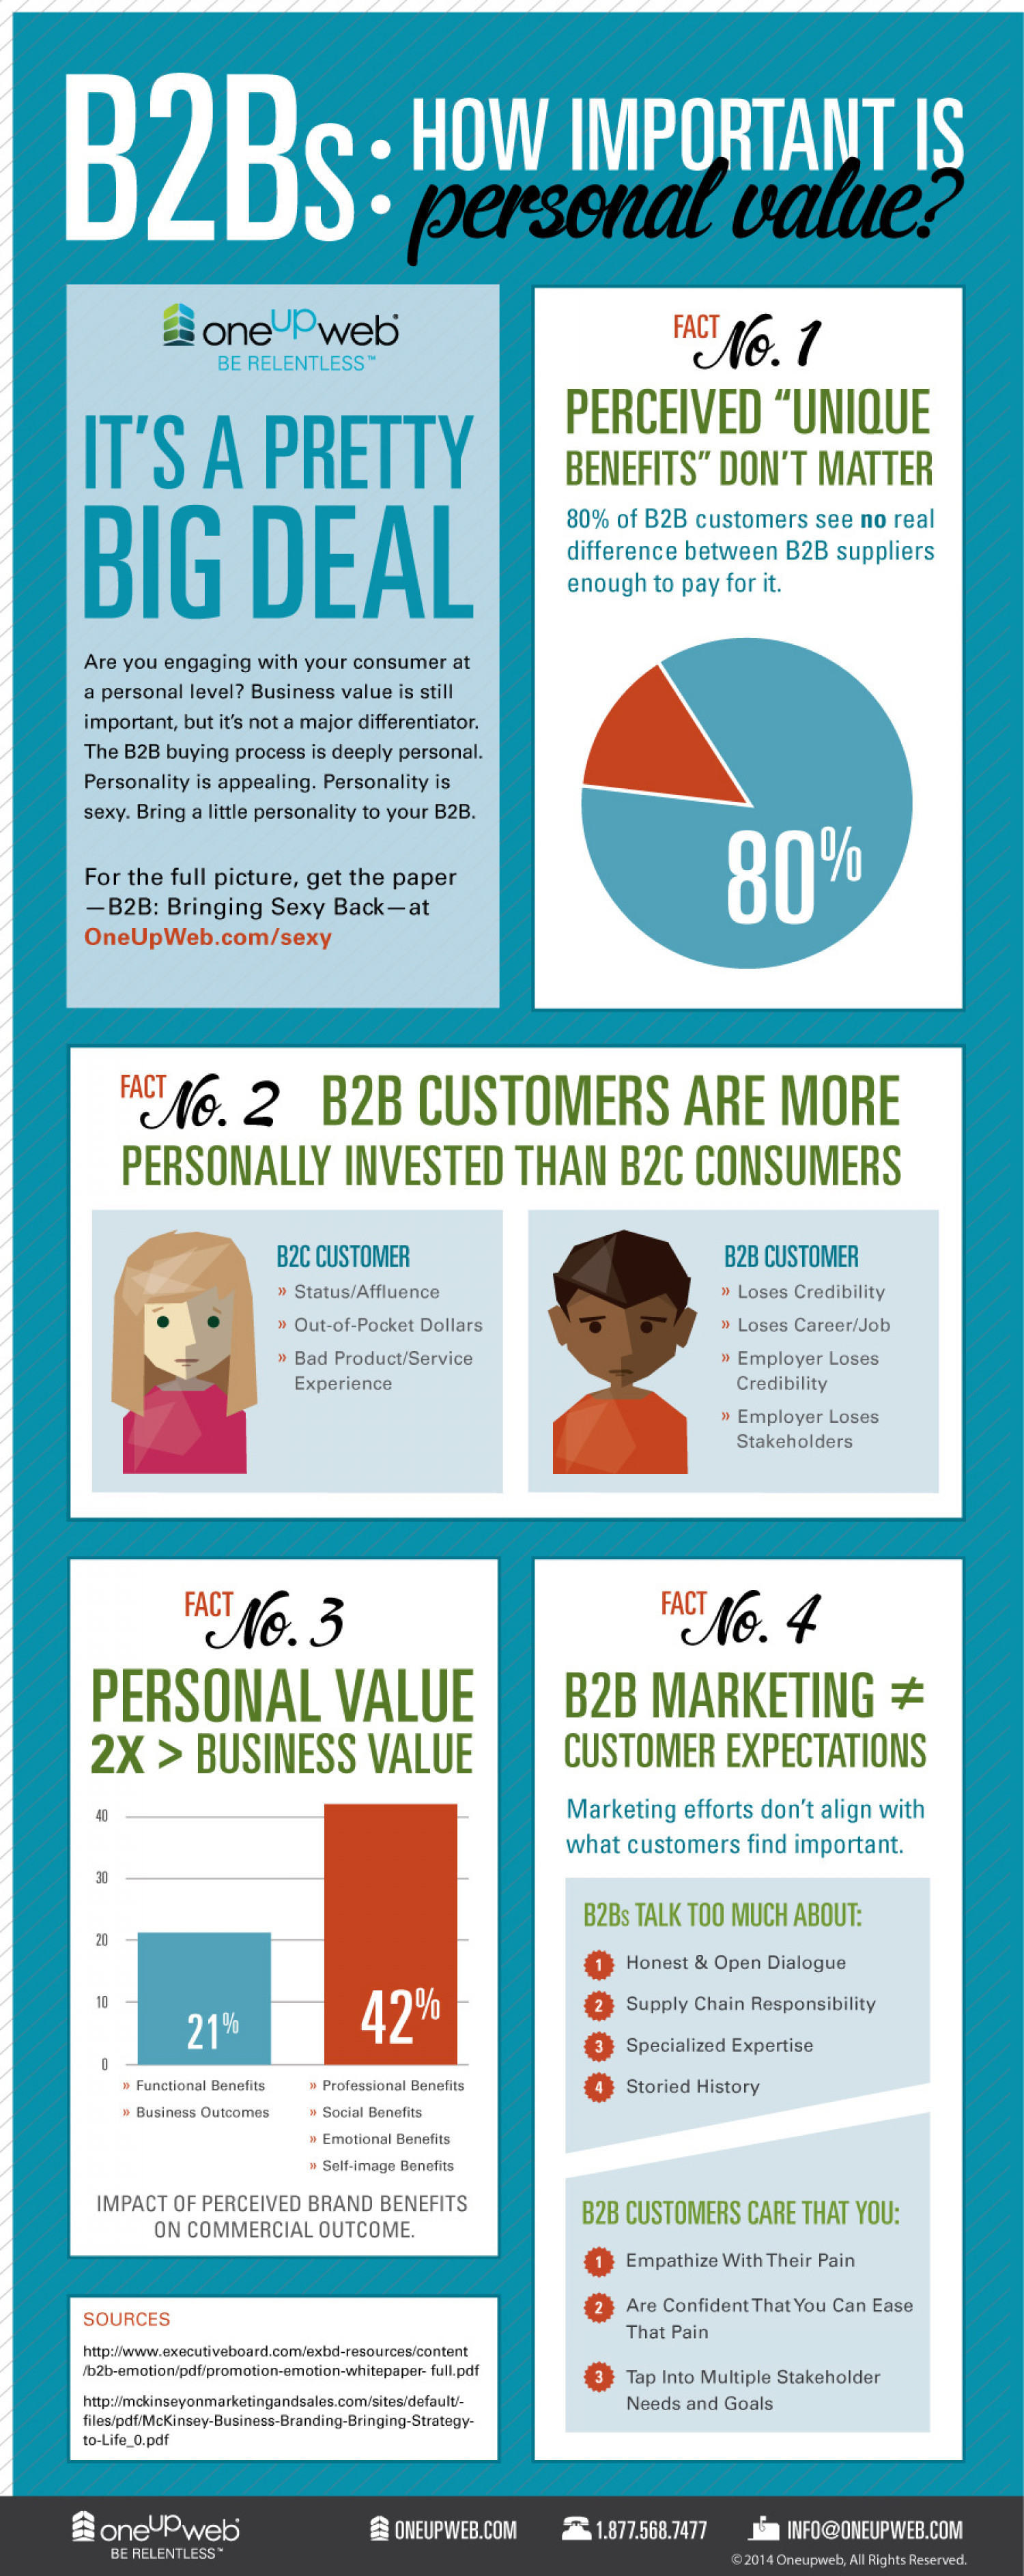 B2Bs: How Important is Personal Value? | Strategic Digital Marketing Agency Infographic